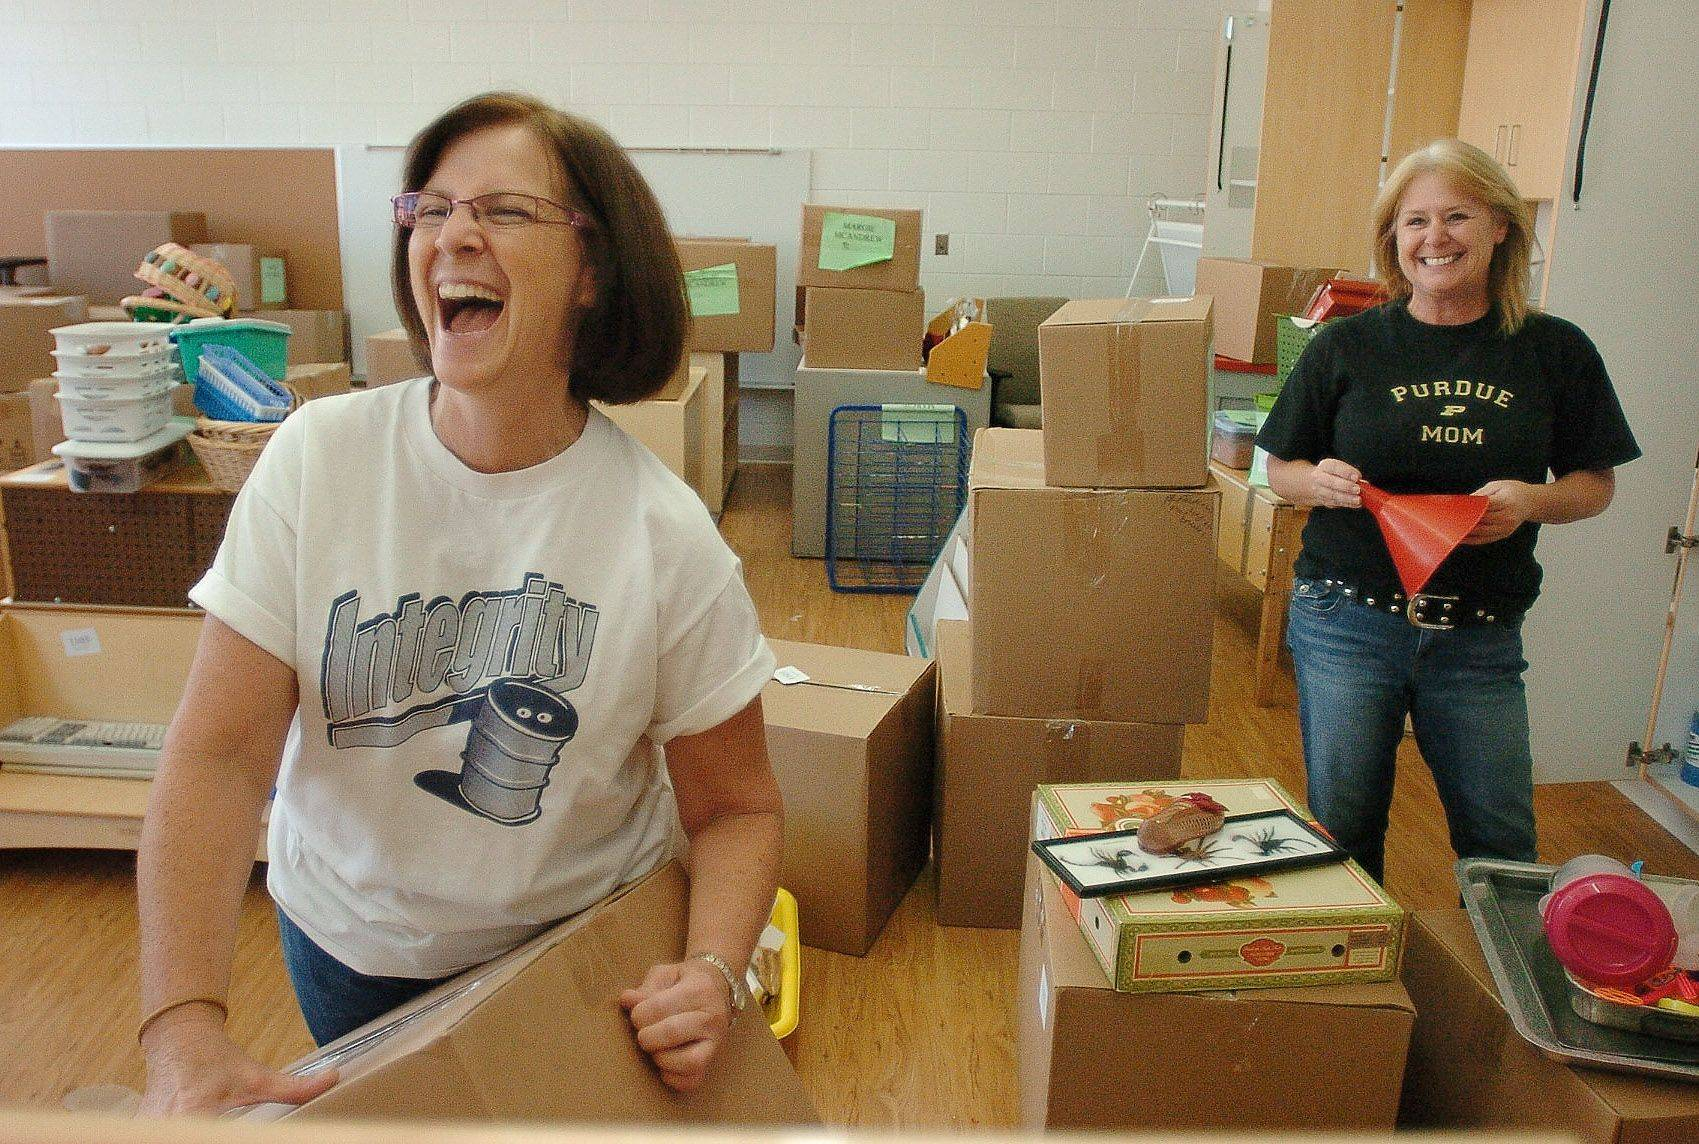 Teacher Margie McAndrew, left, and teacher's assistant Dawn Sasser are happy they're moving into their new digs at District 220's new Early Learning Center in Barrington.